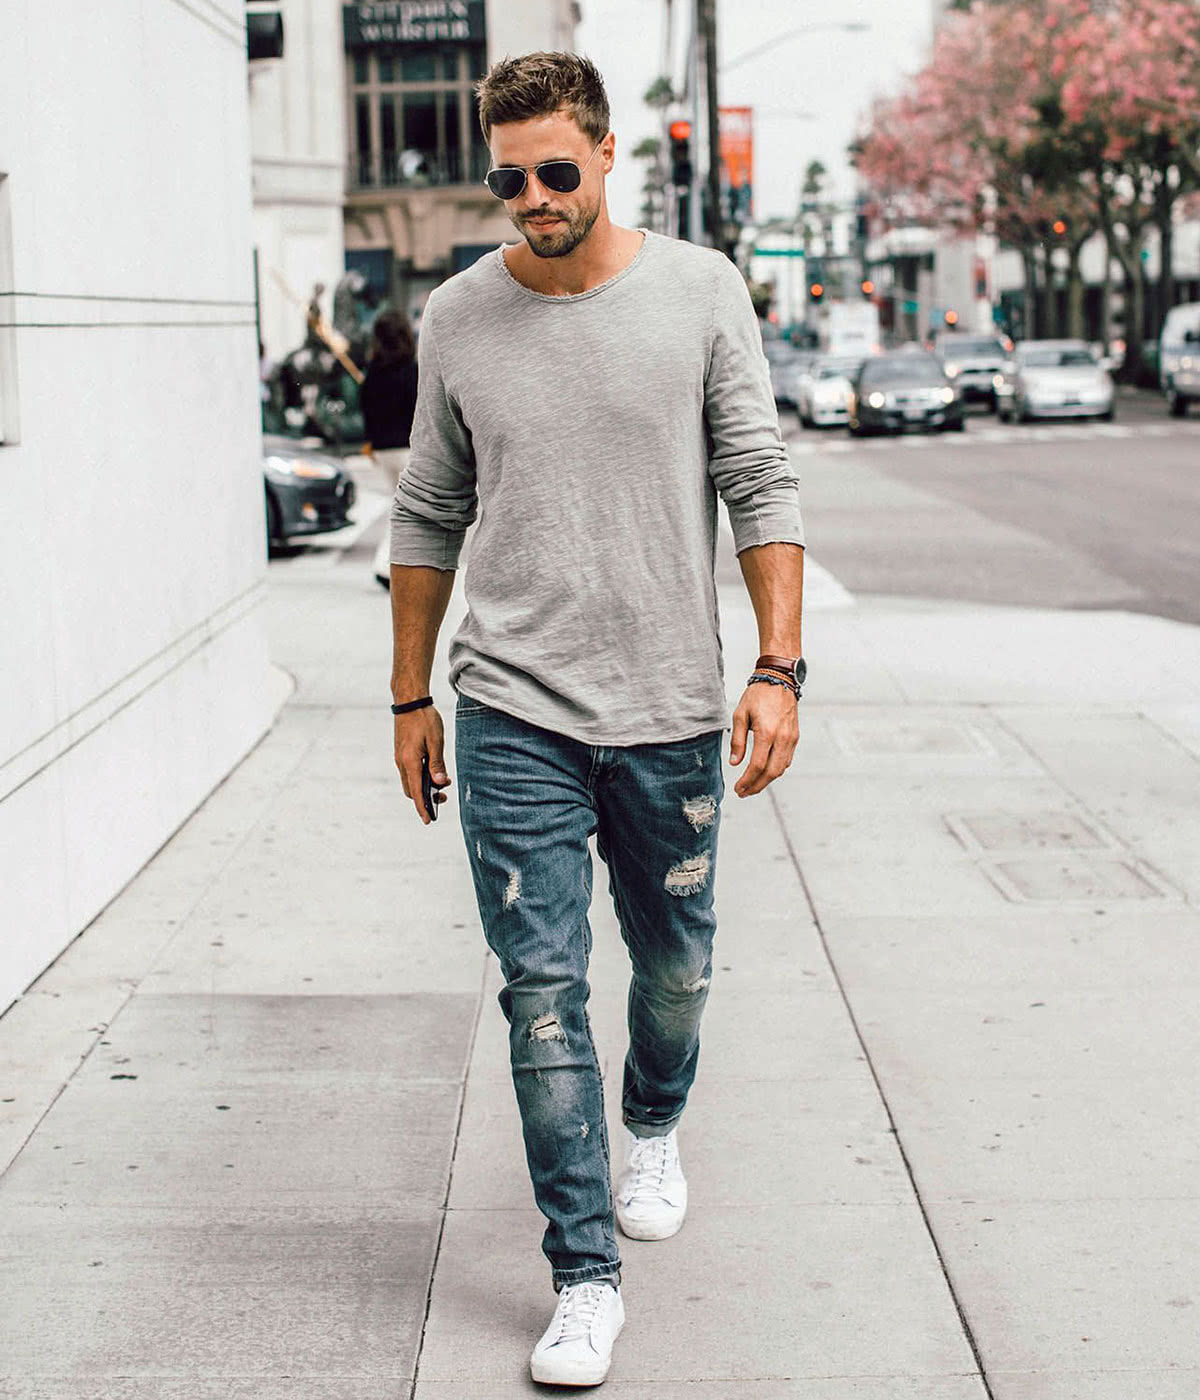 51626221 Casual Style Guide For Men: 7 Pro Tips To Look Great (2019 Updated)